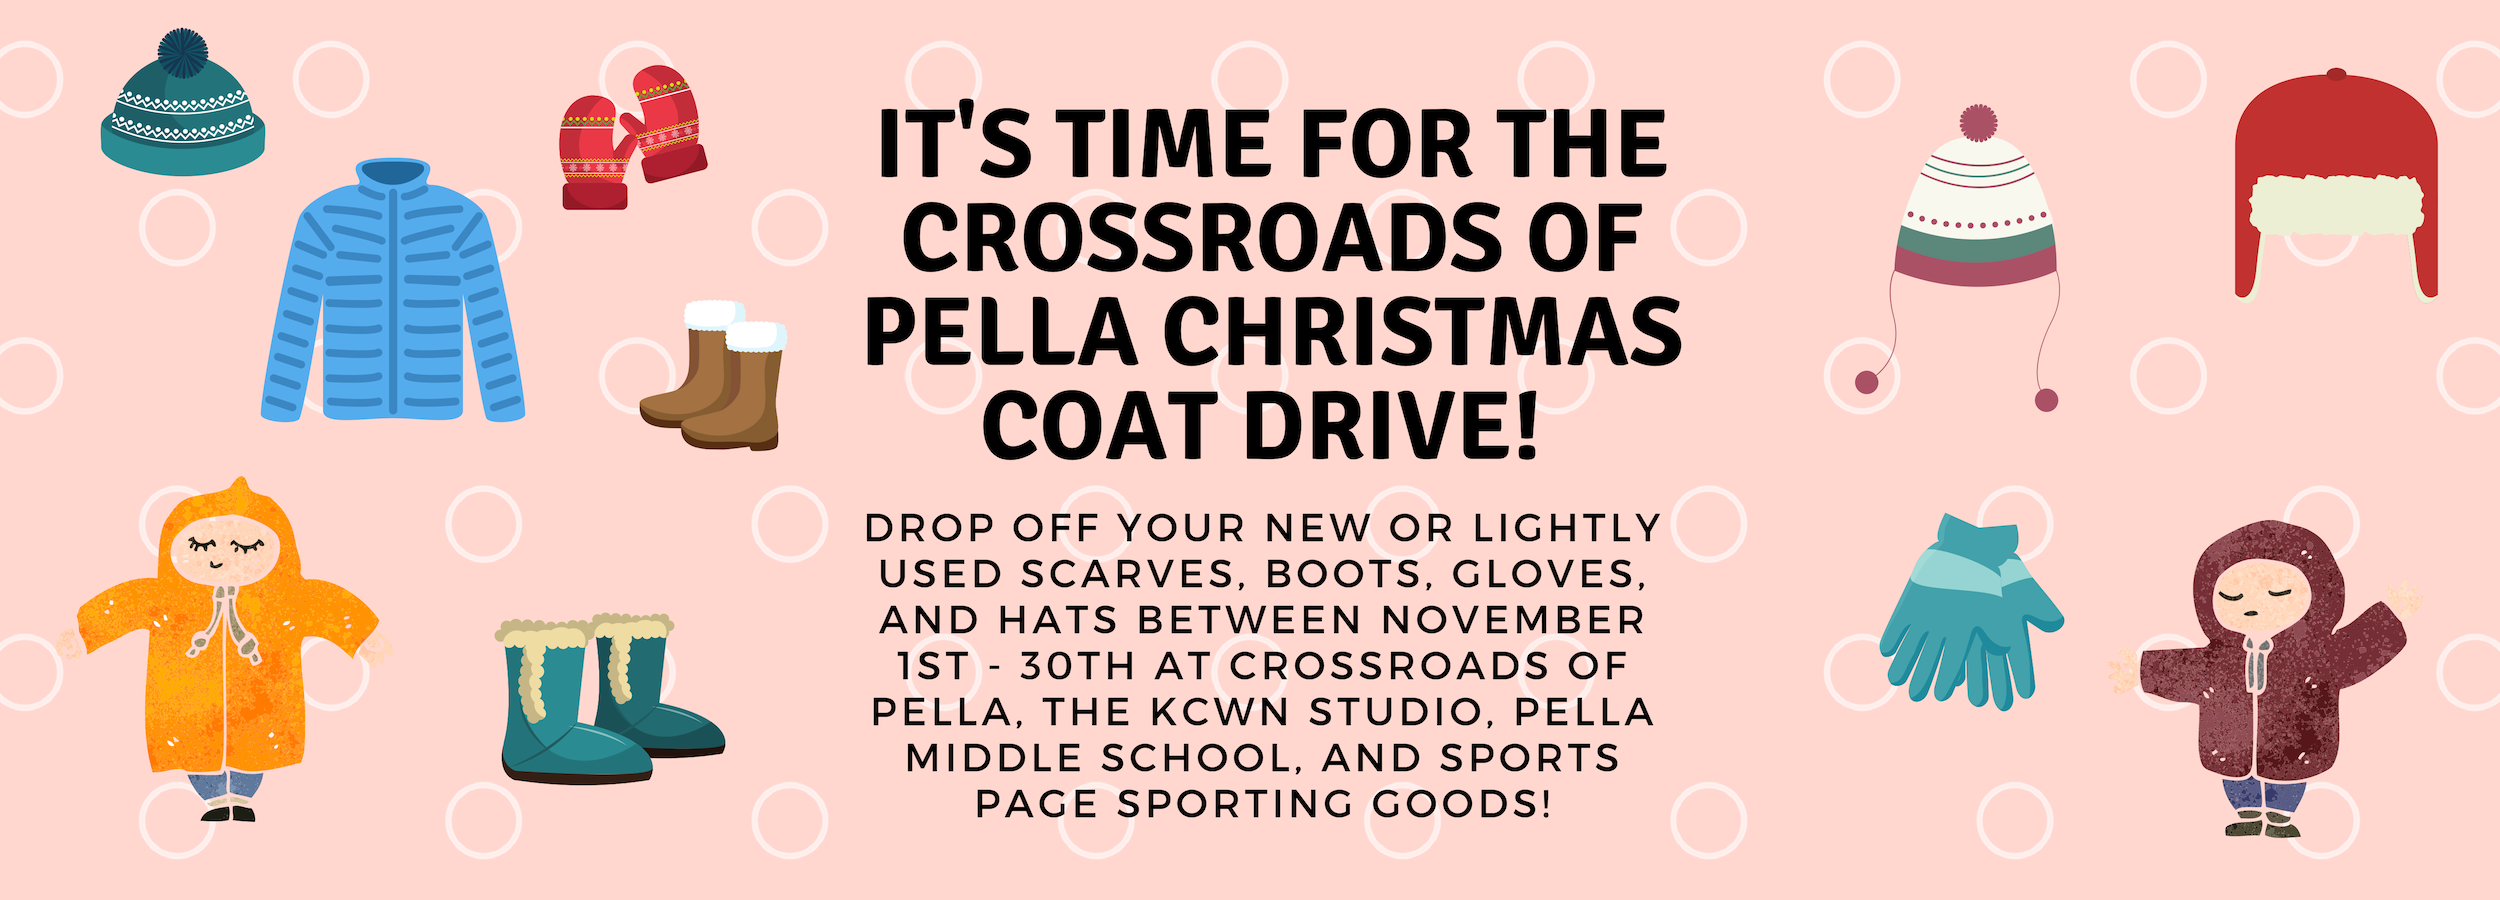 It's time for the crossroads of pella.png